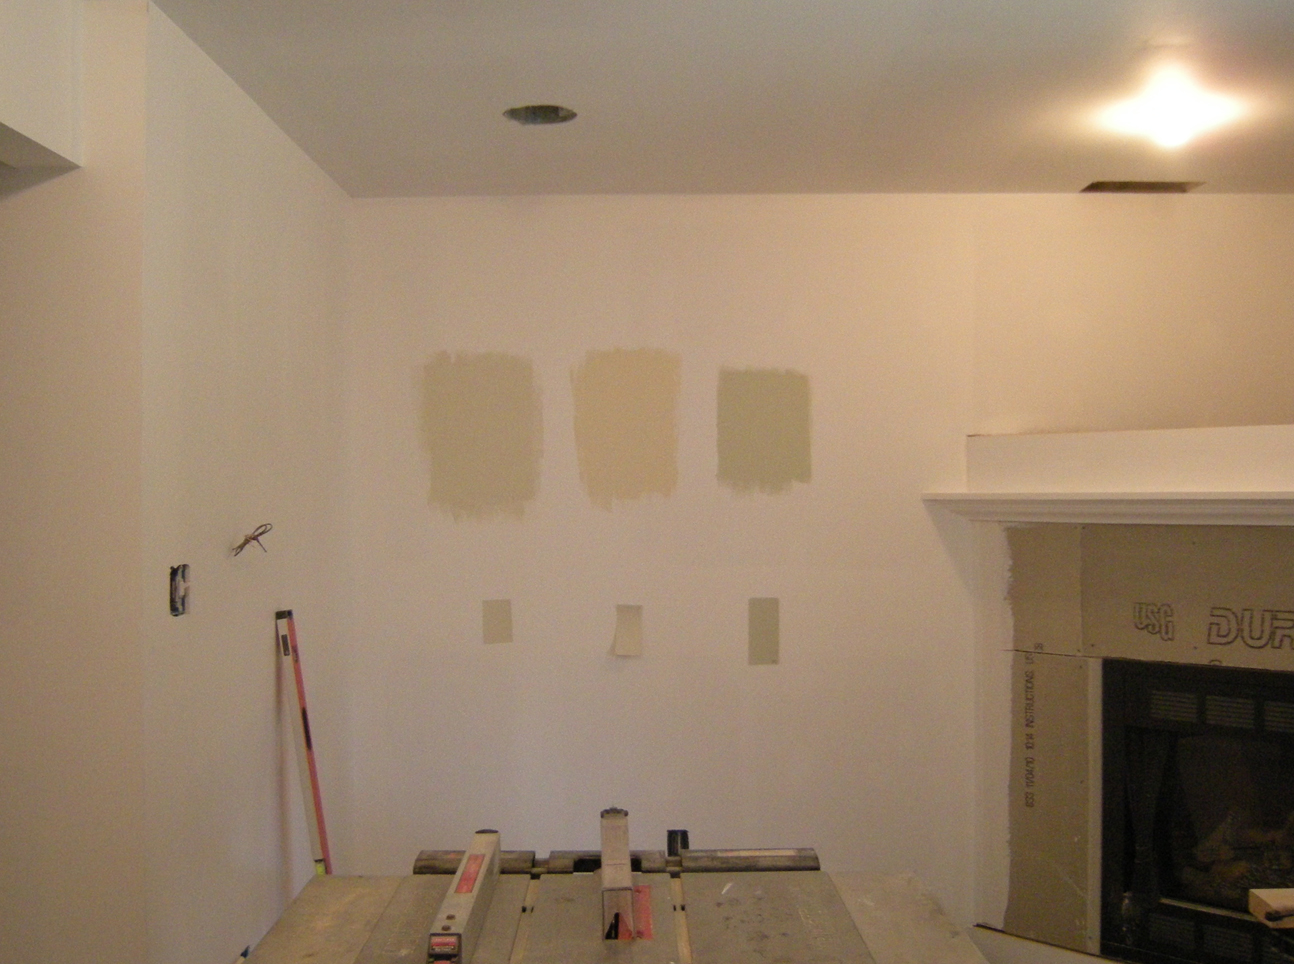 pillar with regard ideas colors interior next glidden tips color plans picking paint white your out to beige cappuccino for